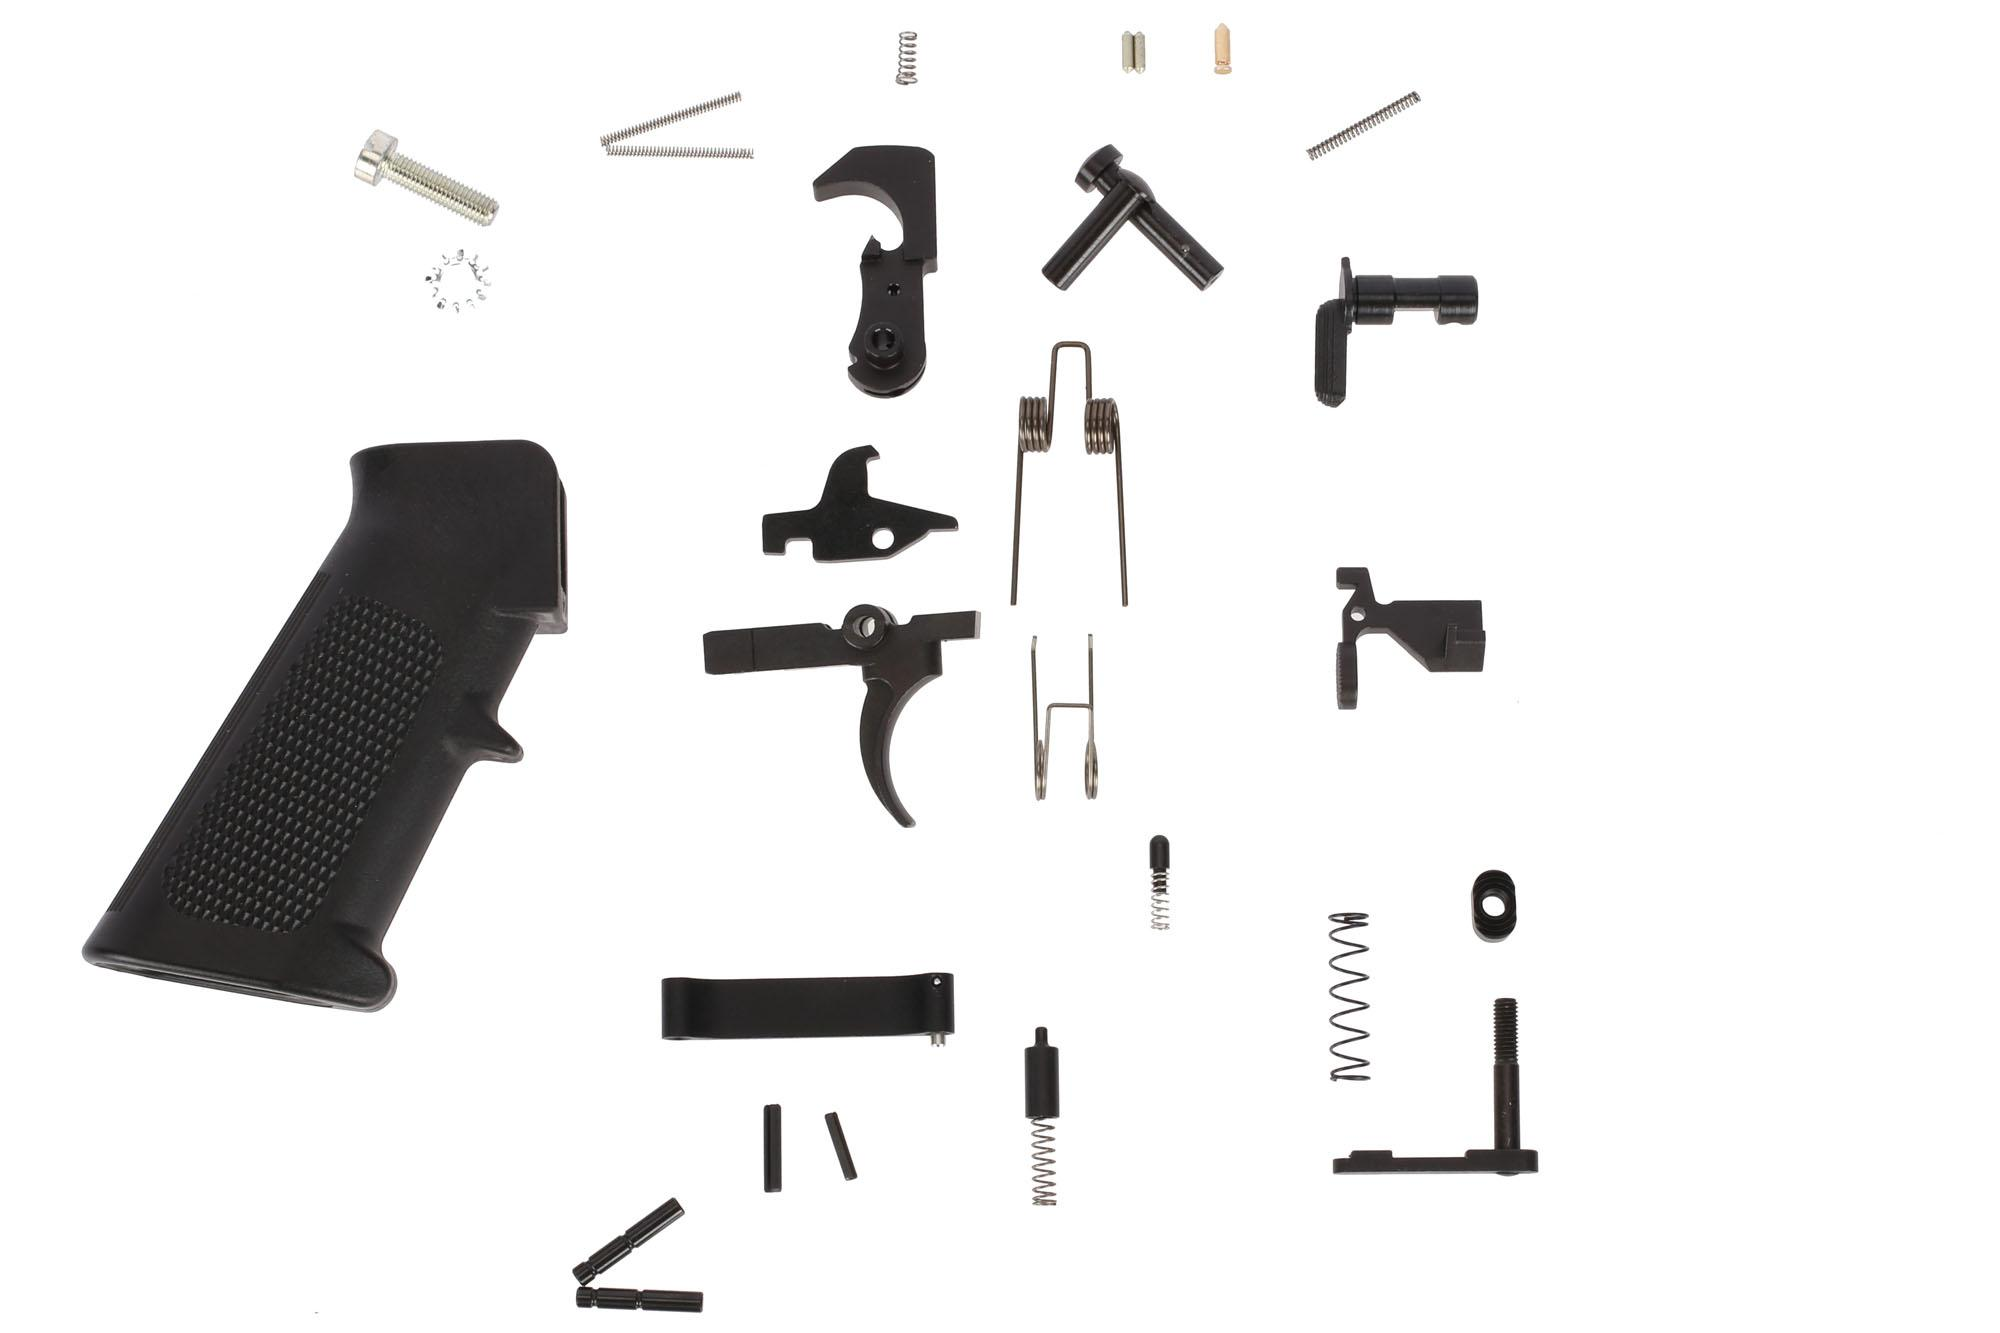 Guntec USA Complete AR-15 Lower Parts Kit with A2 Pistol Grip